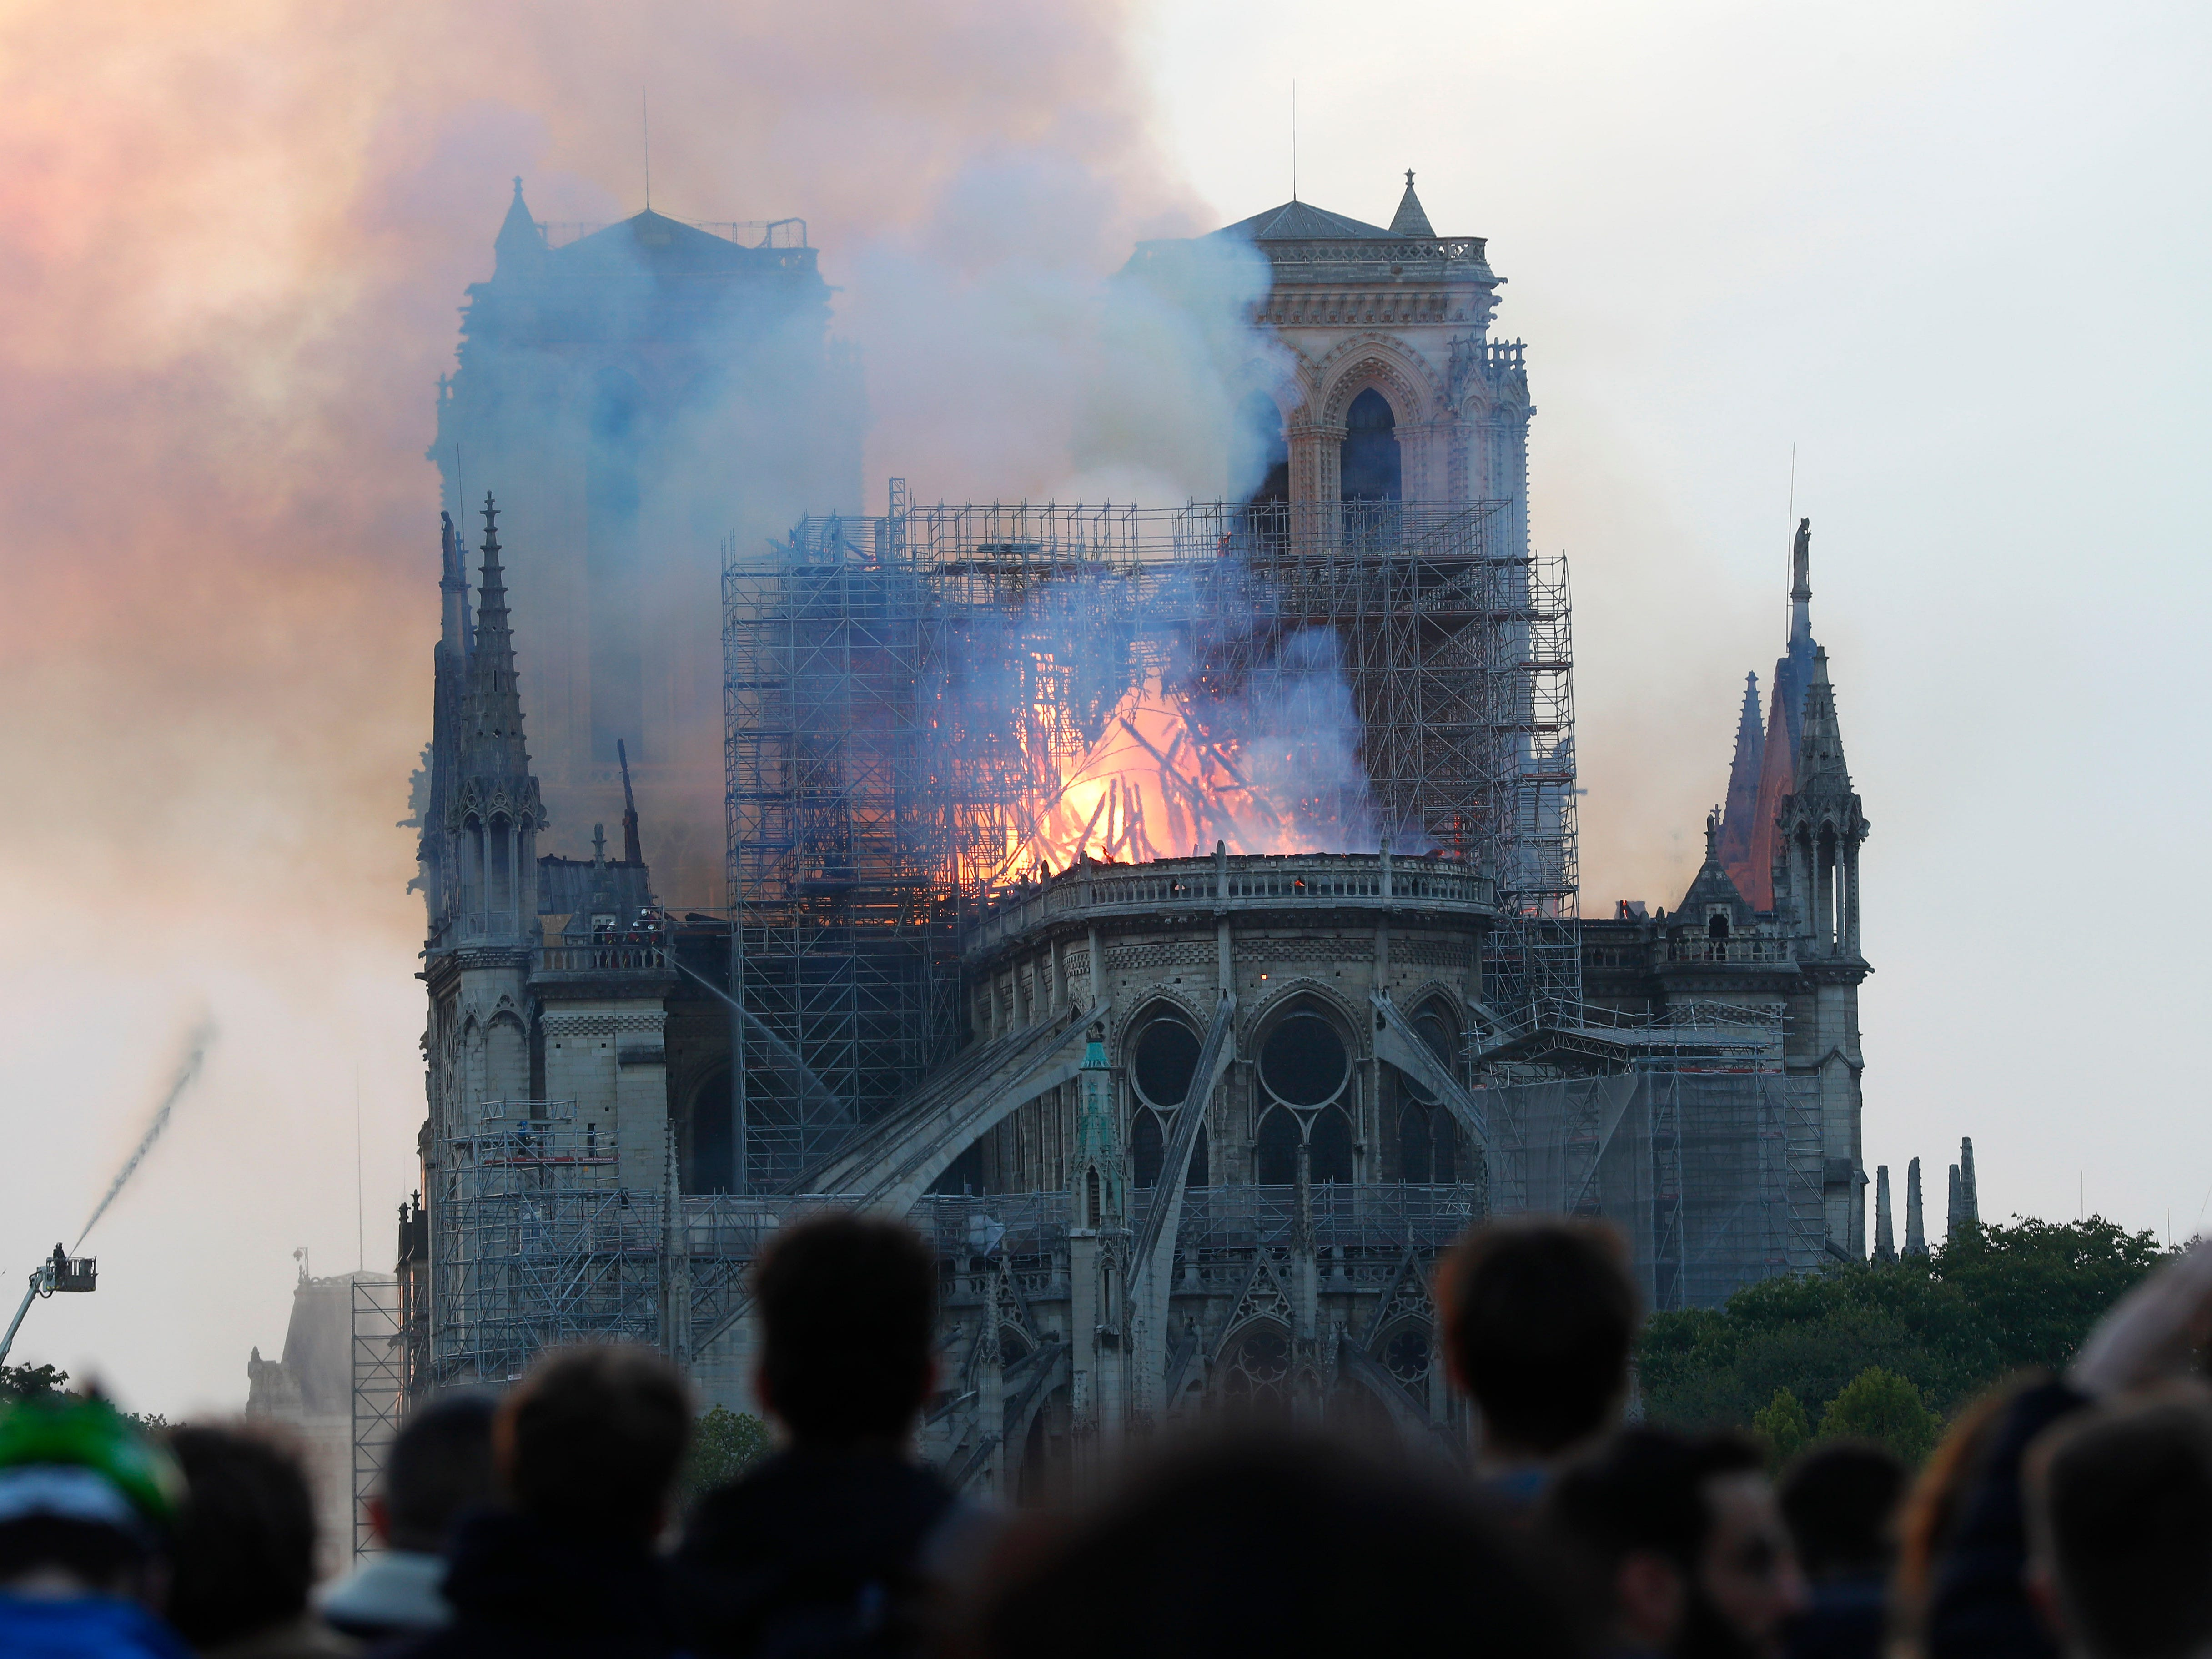 People watch as flames and smoke rise from the iconic cathedral as it burns.